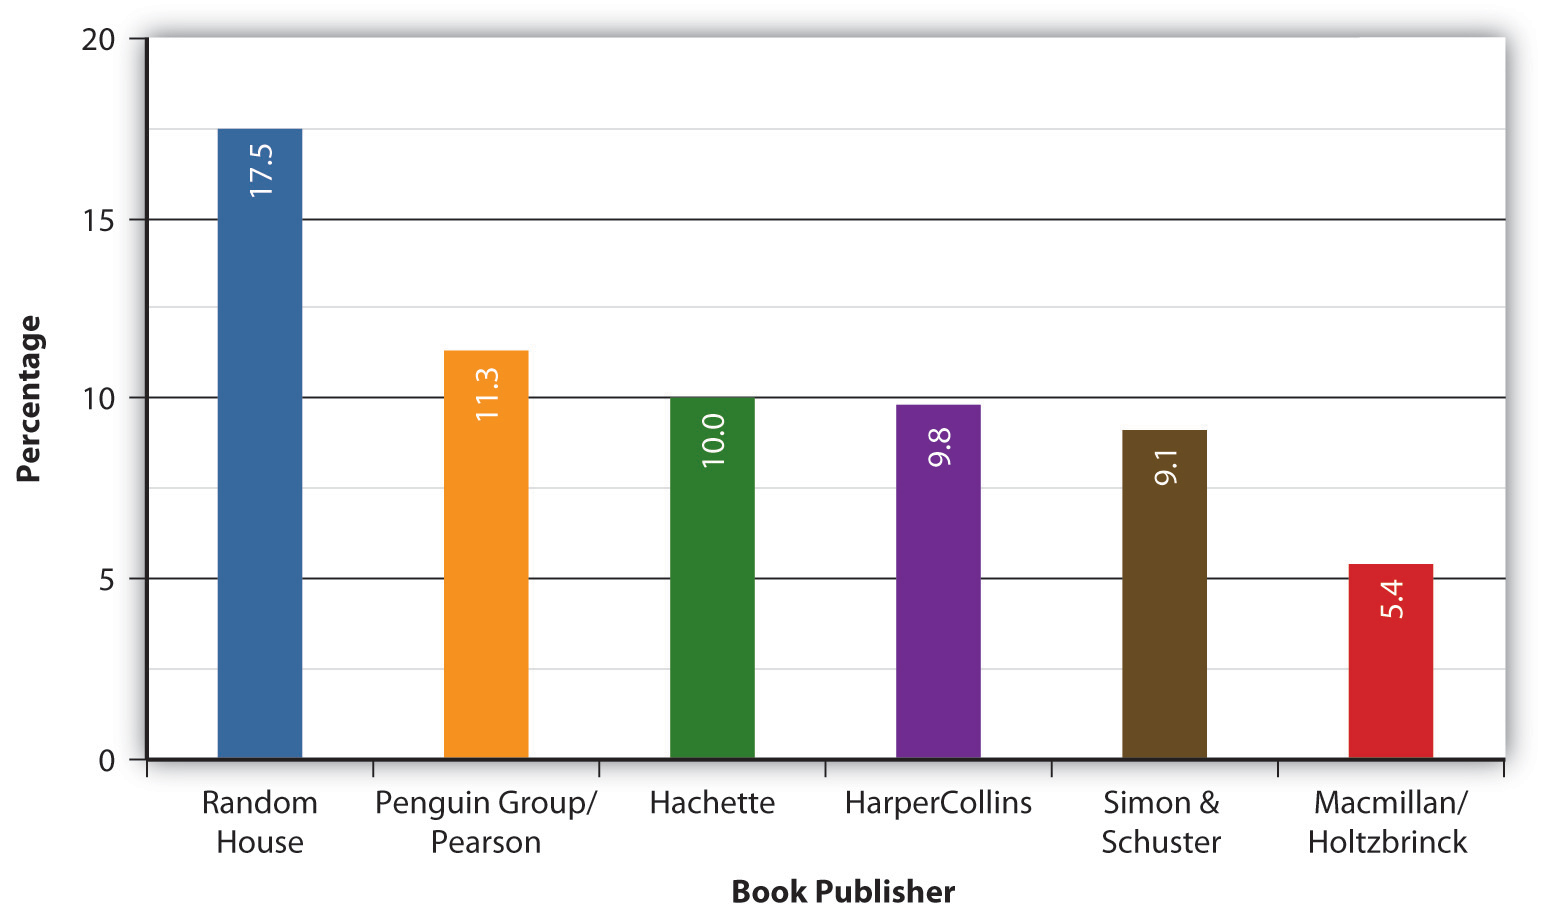 A graph showing the percentage of the book market owned by the Big 6 publishers: Random House, Penguin Group, Hachette, HarperCollins, Simon & Schuster, and MacMillan/Holtzbrinck